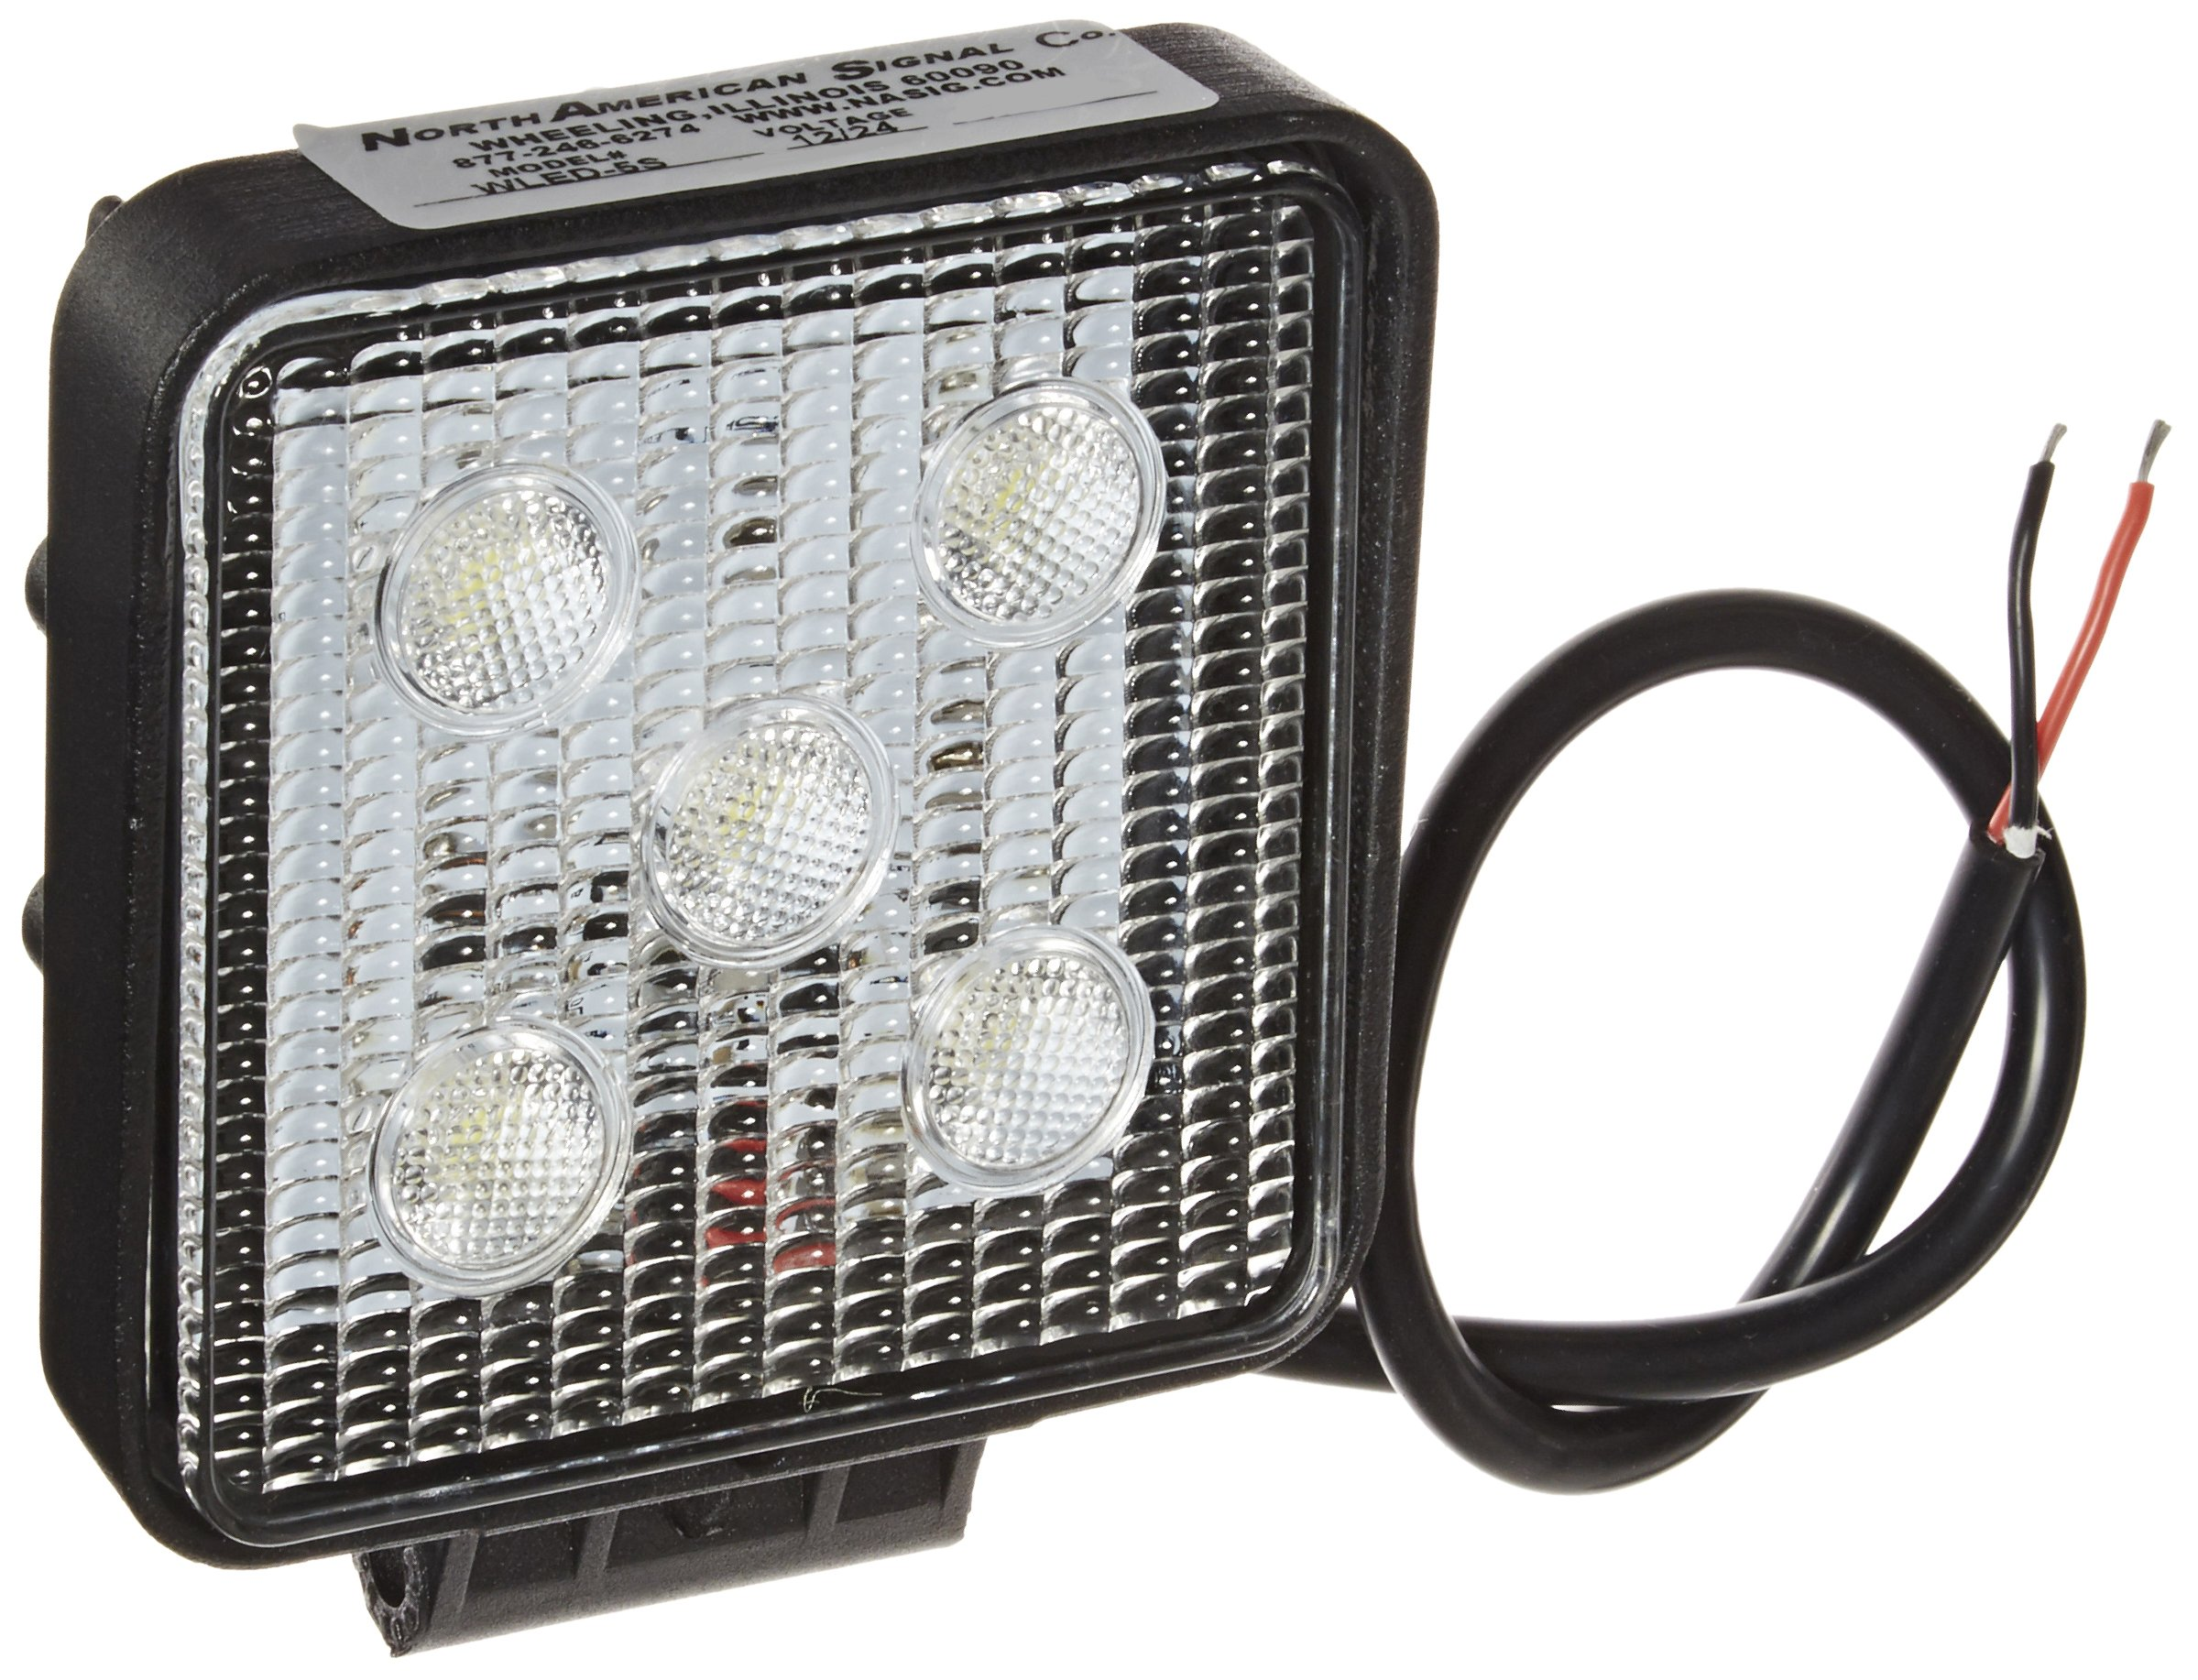 North American Signal WLED-5S Square LED Economy Work Light, Aluminum, 1200 Lumens, 12/24V